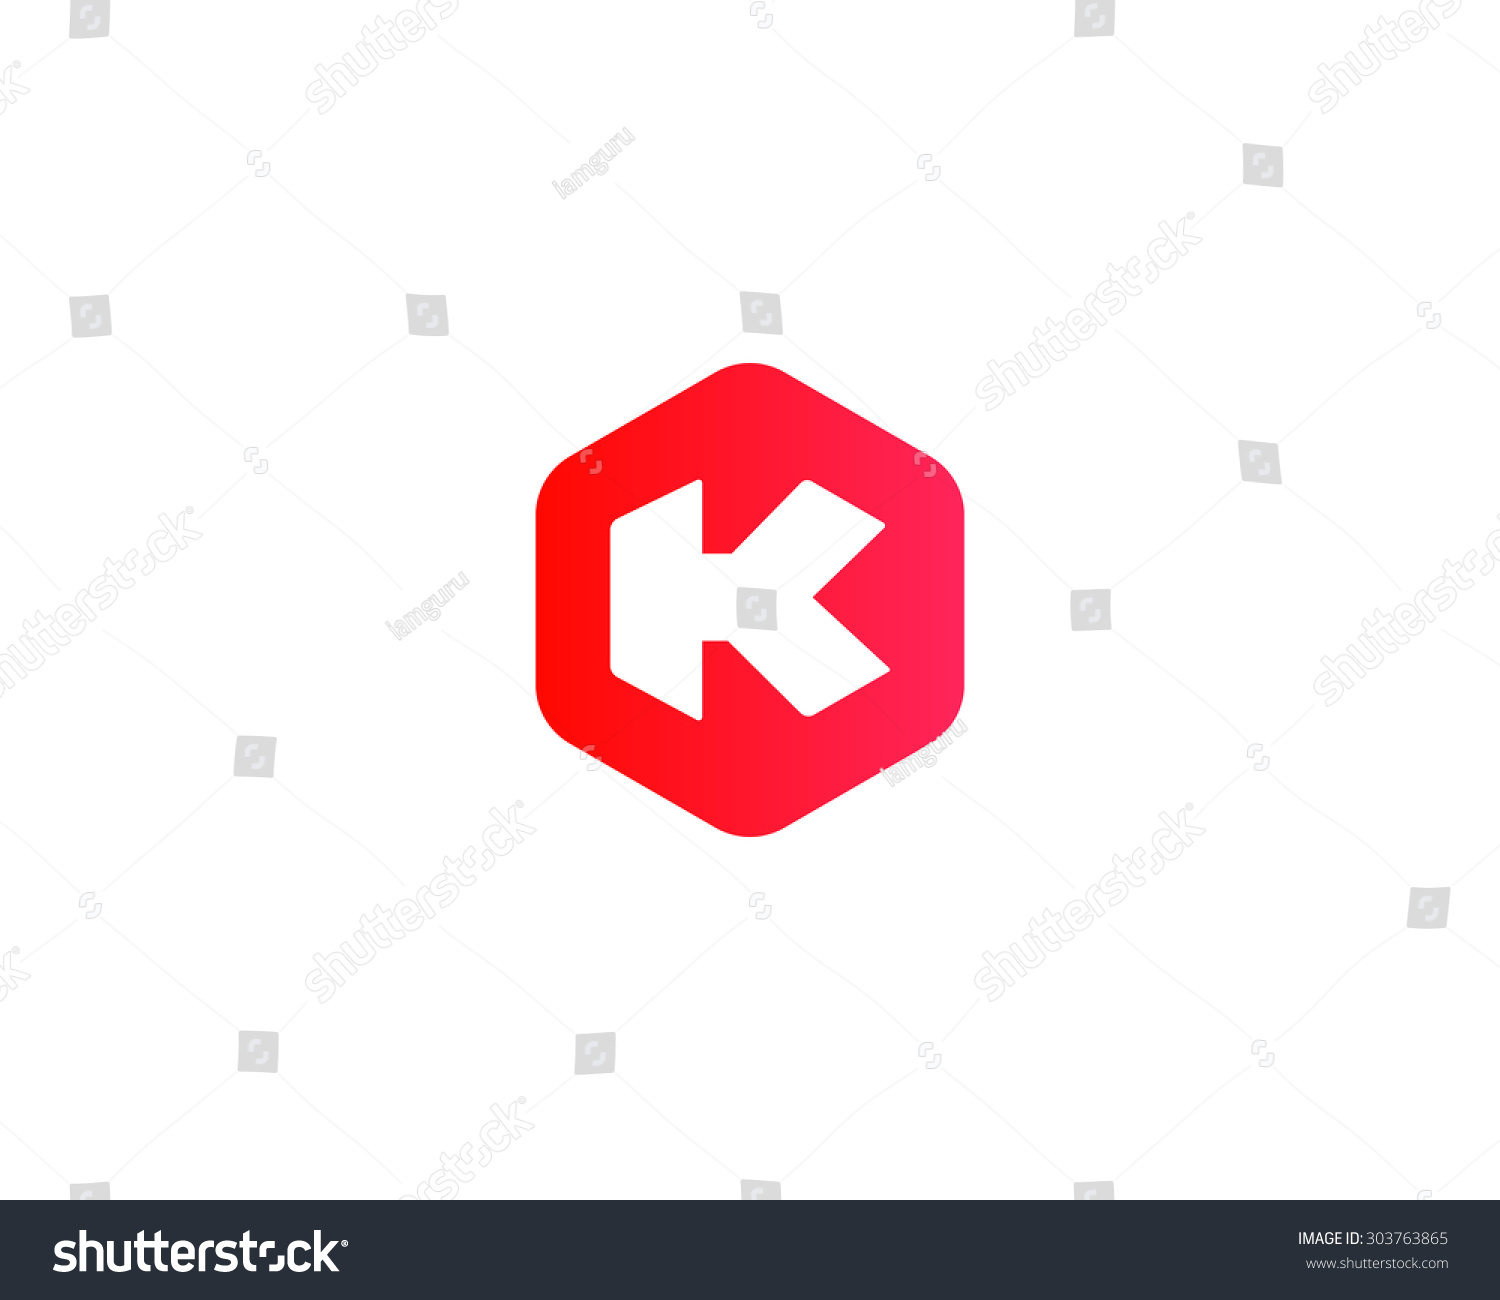 abstract letter k logo design templateのイラスト素材 303763865